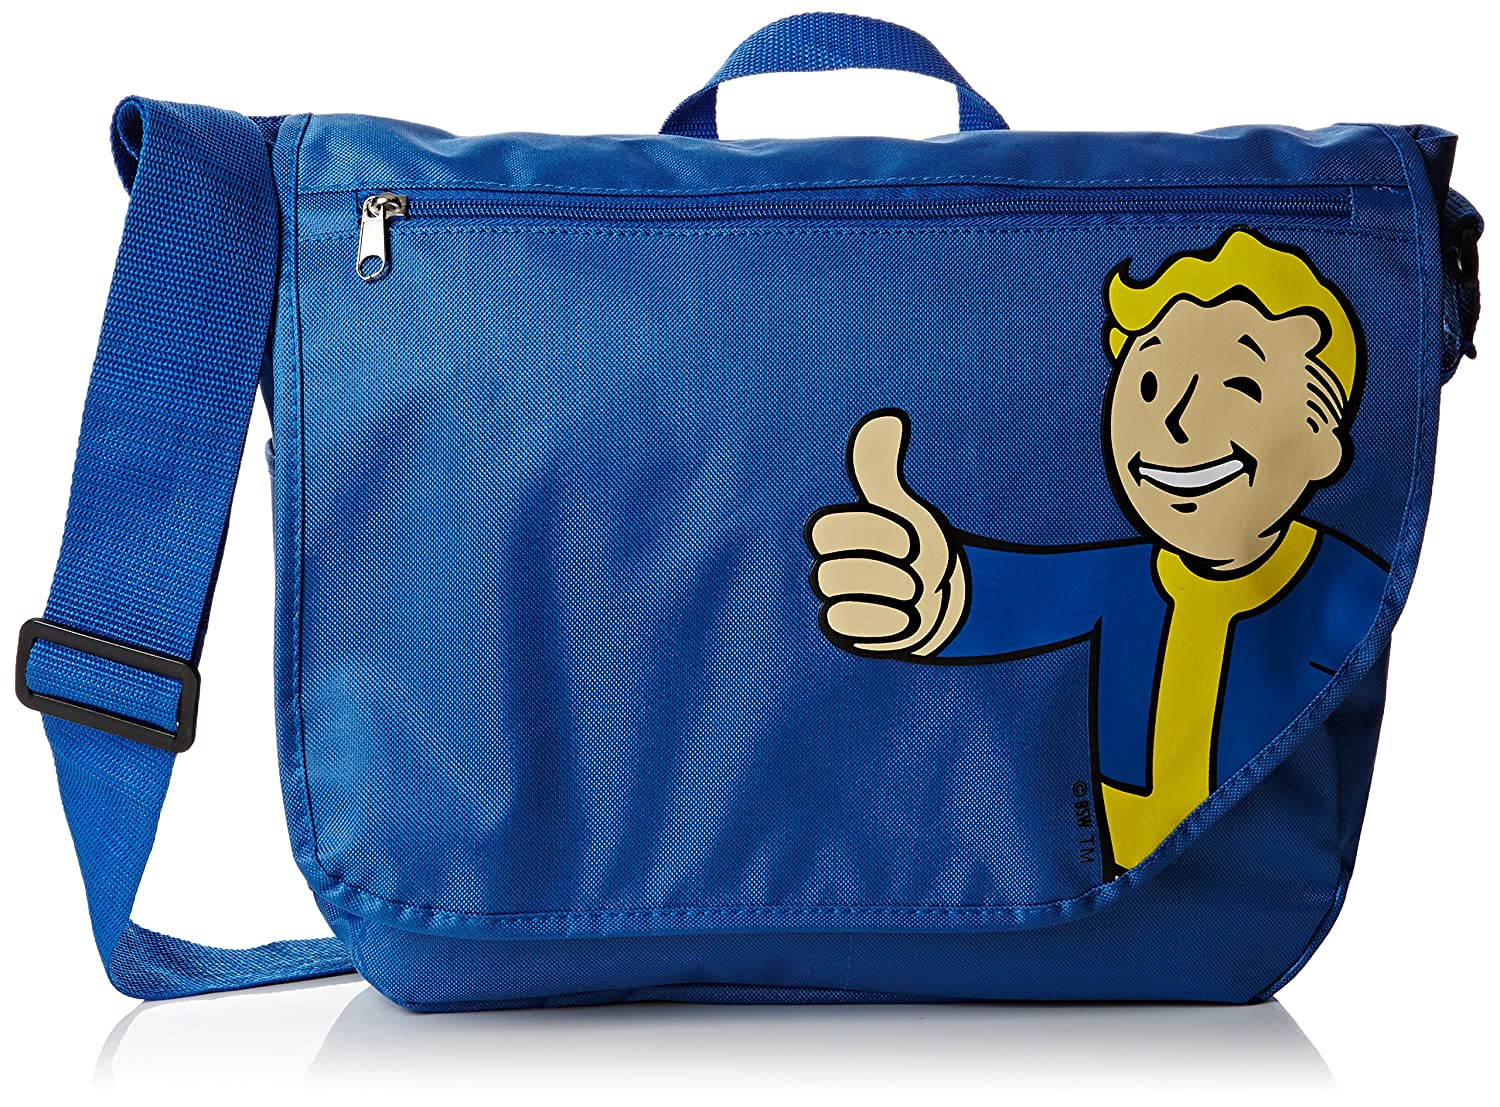 Fallout 4 VAULT Boy Messenger Bag - Licensing Bioworld MB240005FOT